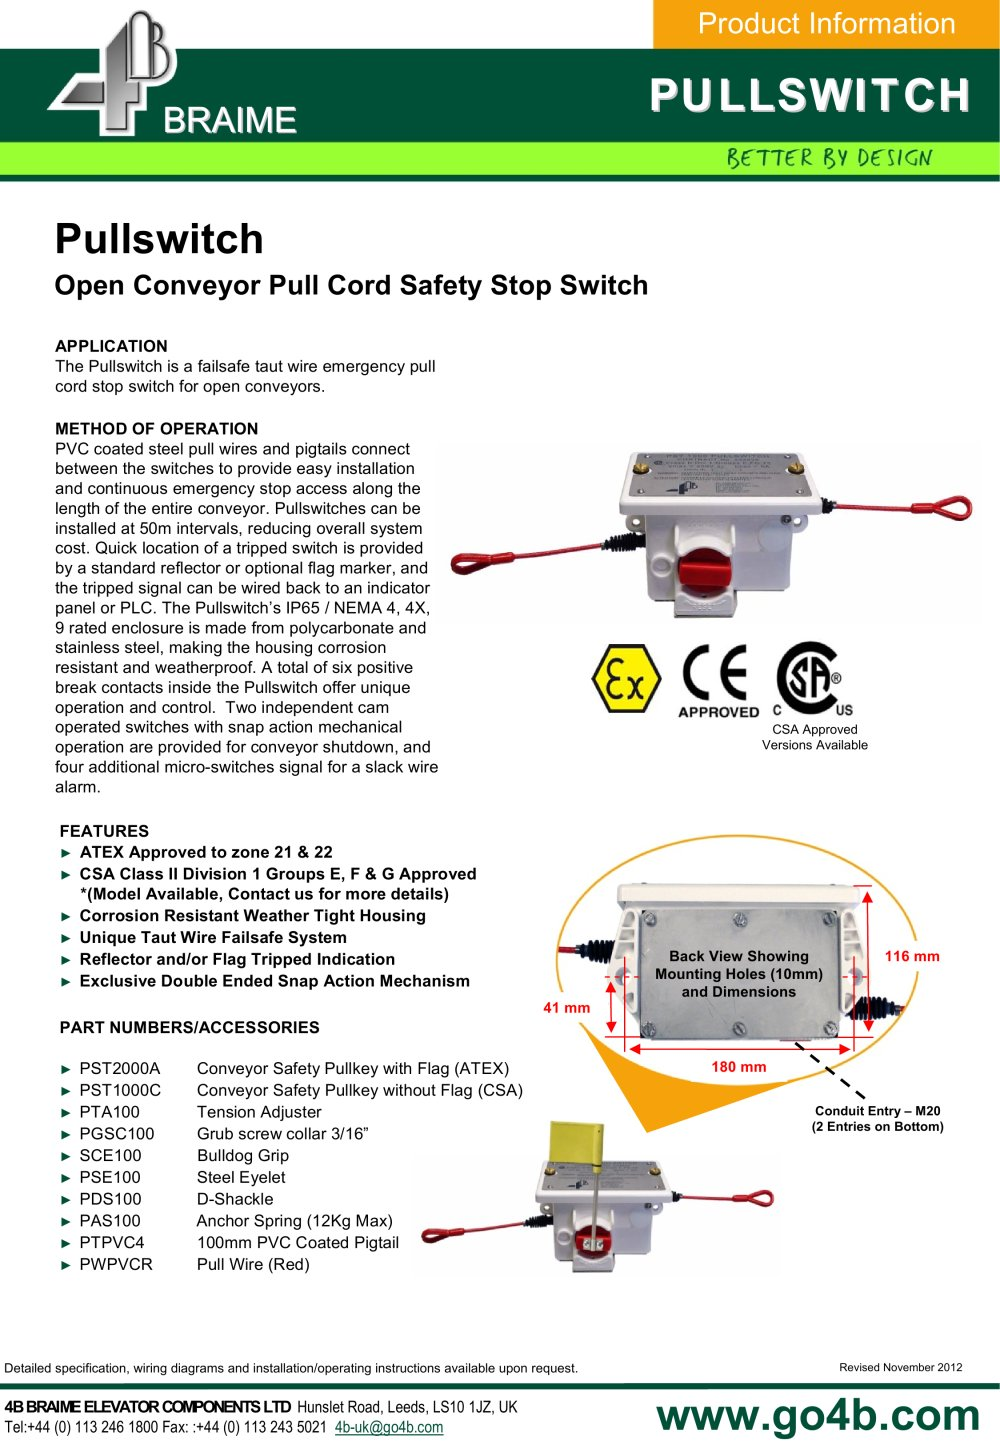 b pullswitch conveyor safety stop switch b braime components 4b pullswitch conveyor safety stop switch 1 2 pages